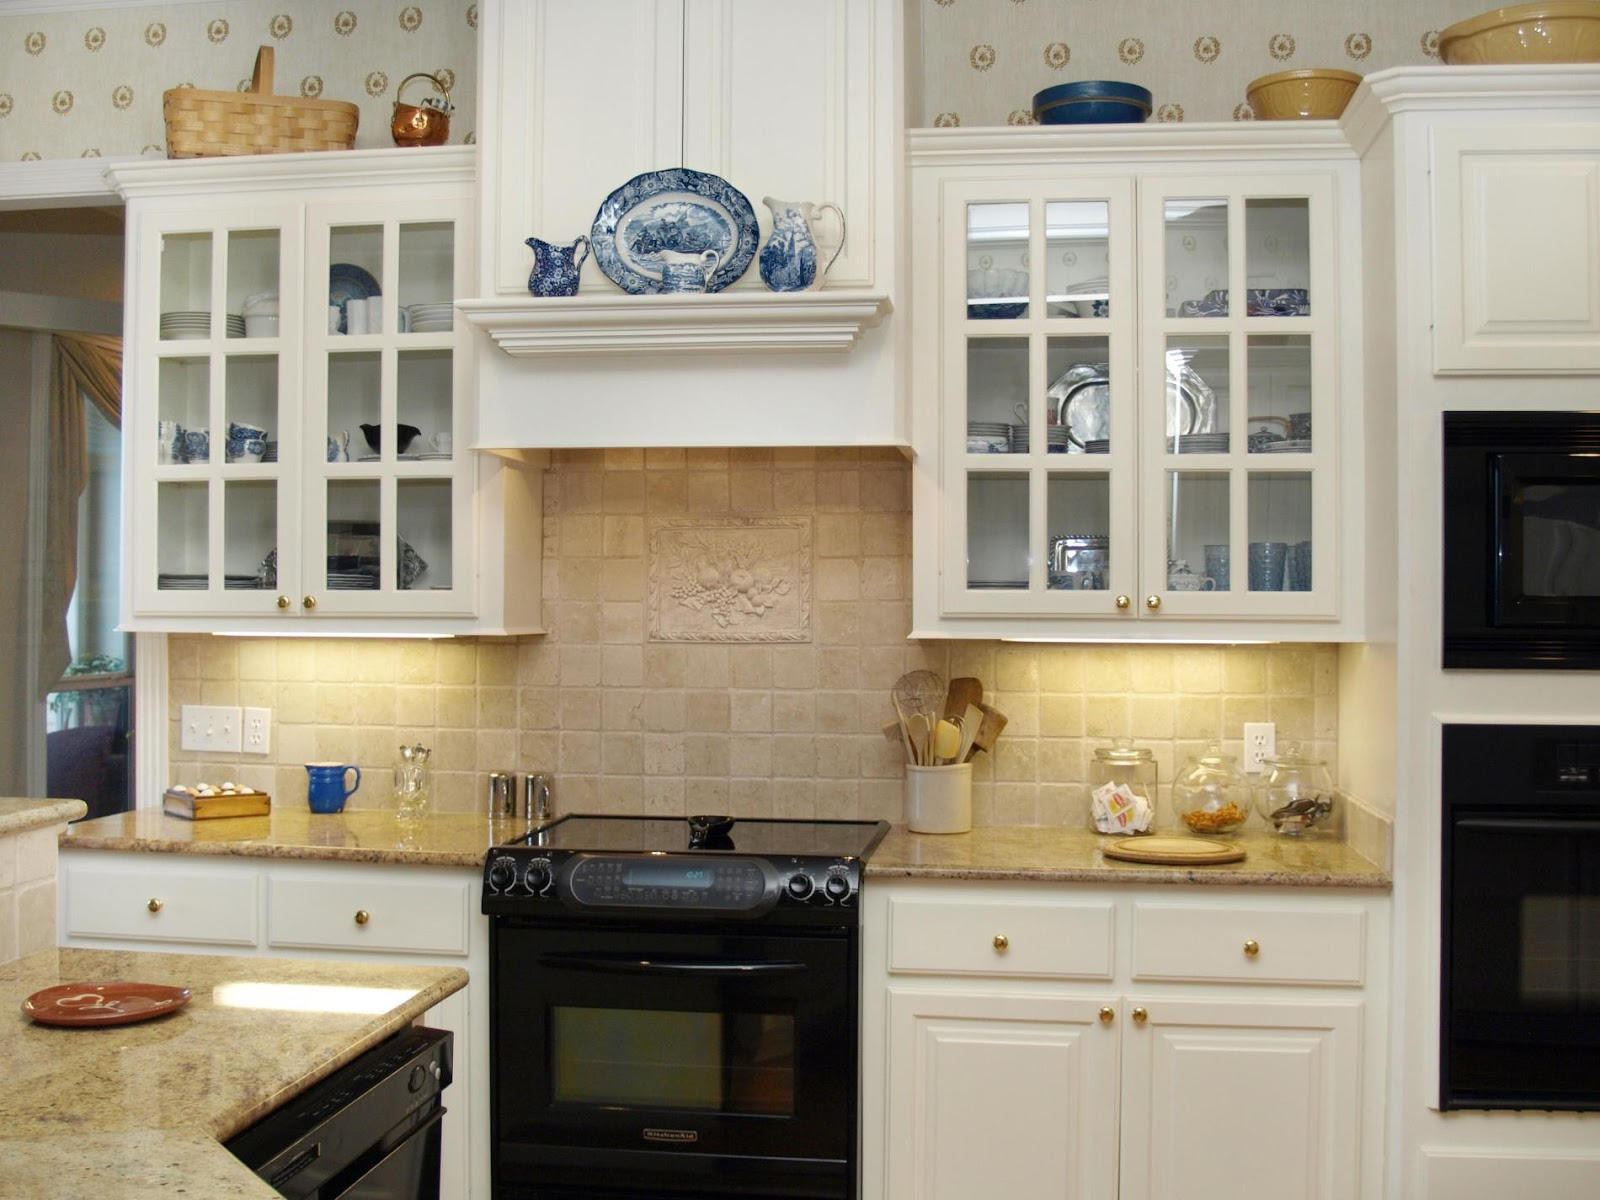 Kitchen shelves decoration dream house experience for Kitchen picture decor